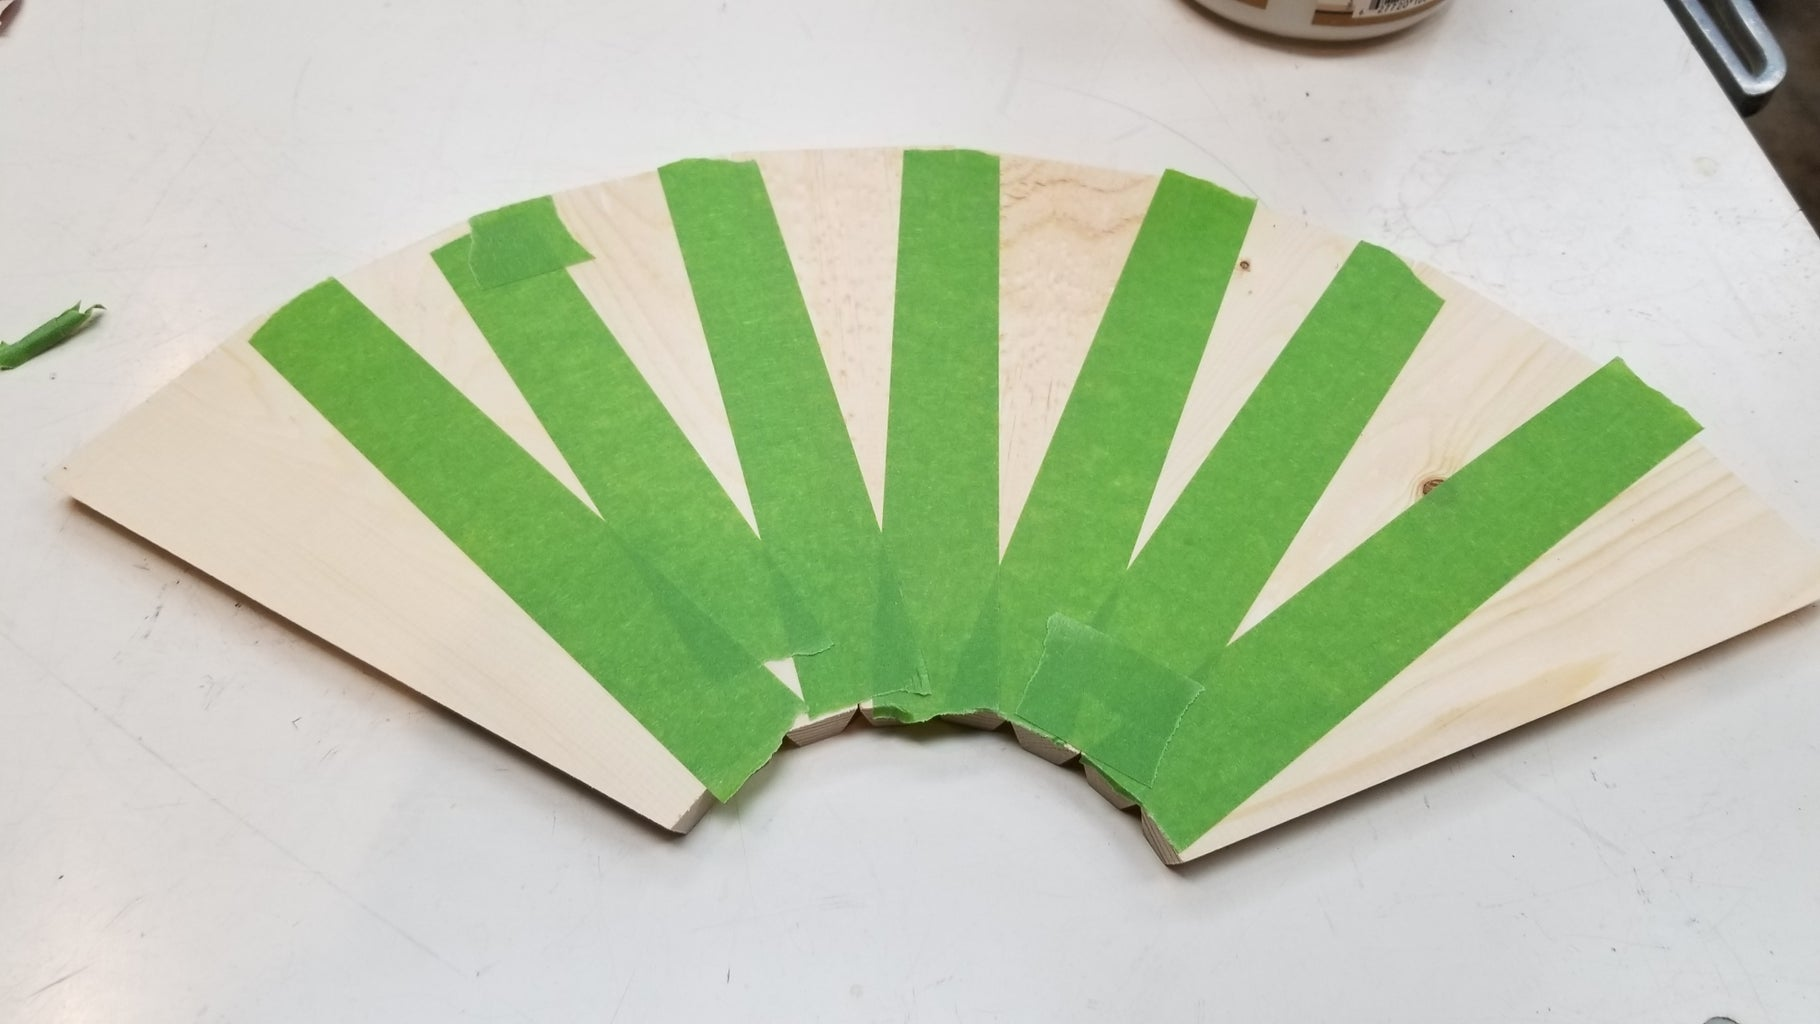 Fan and Tape